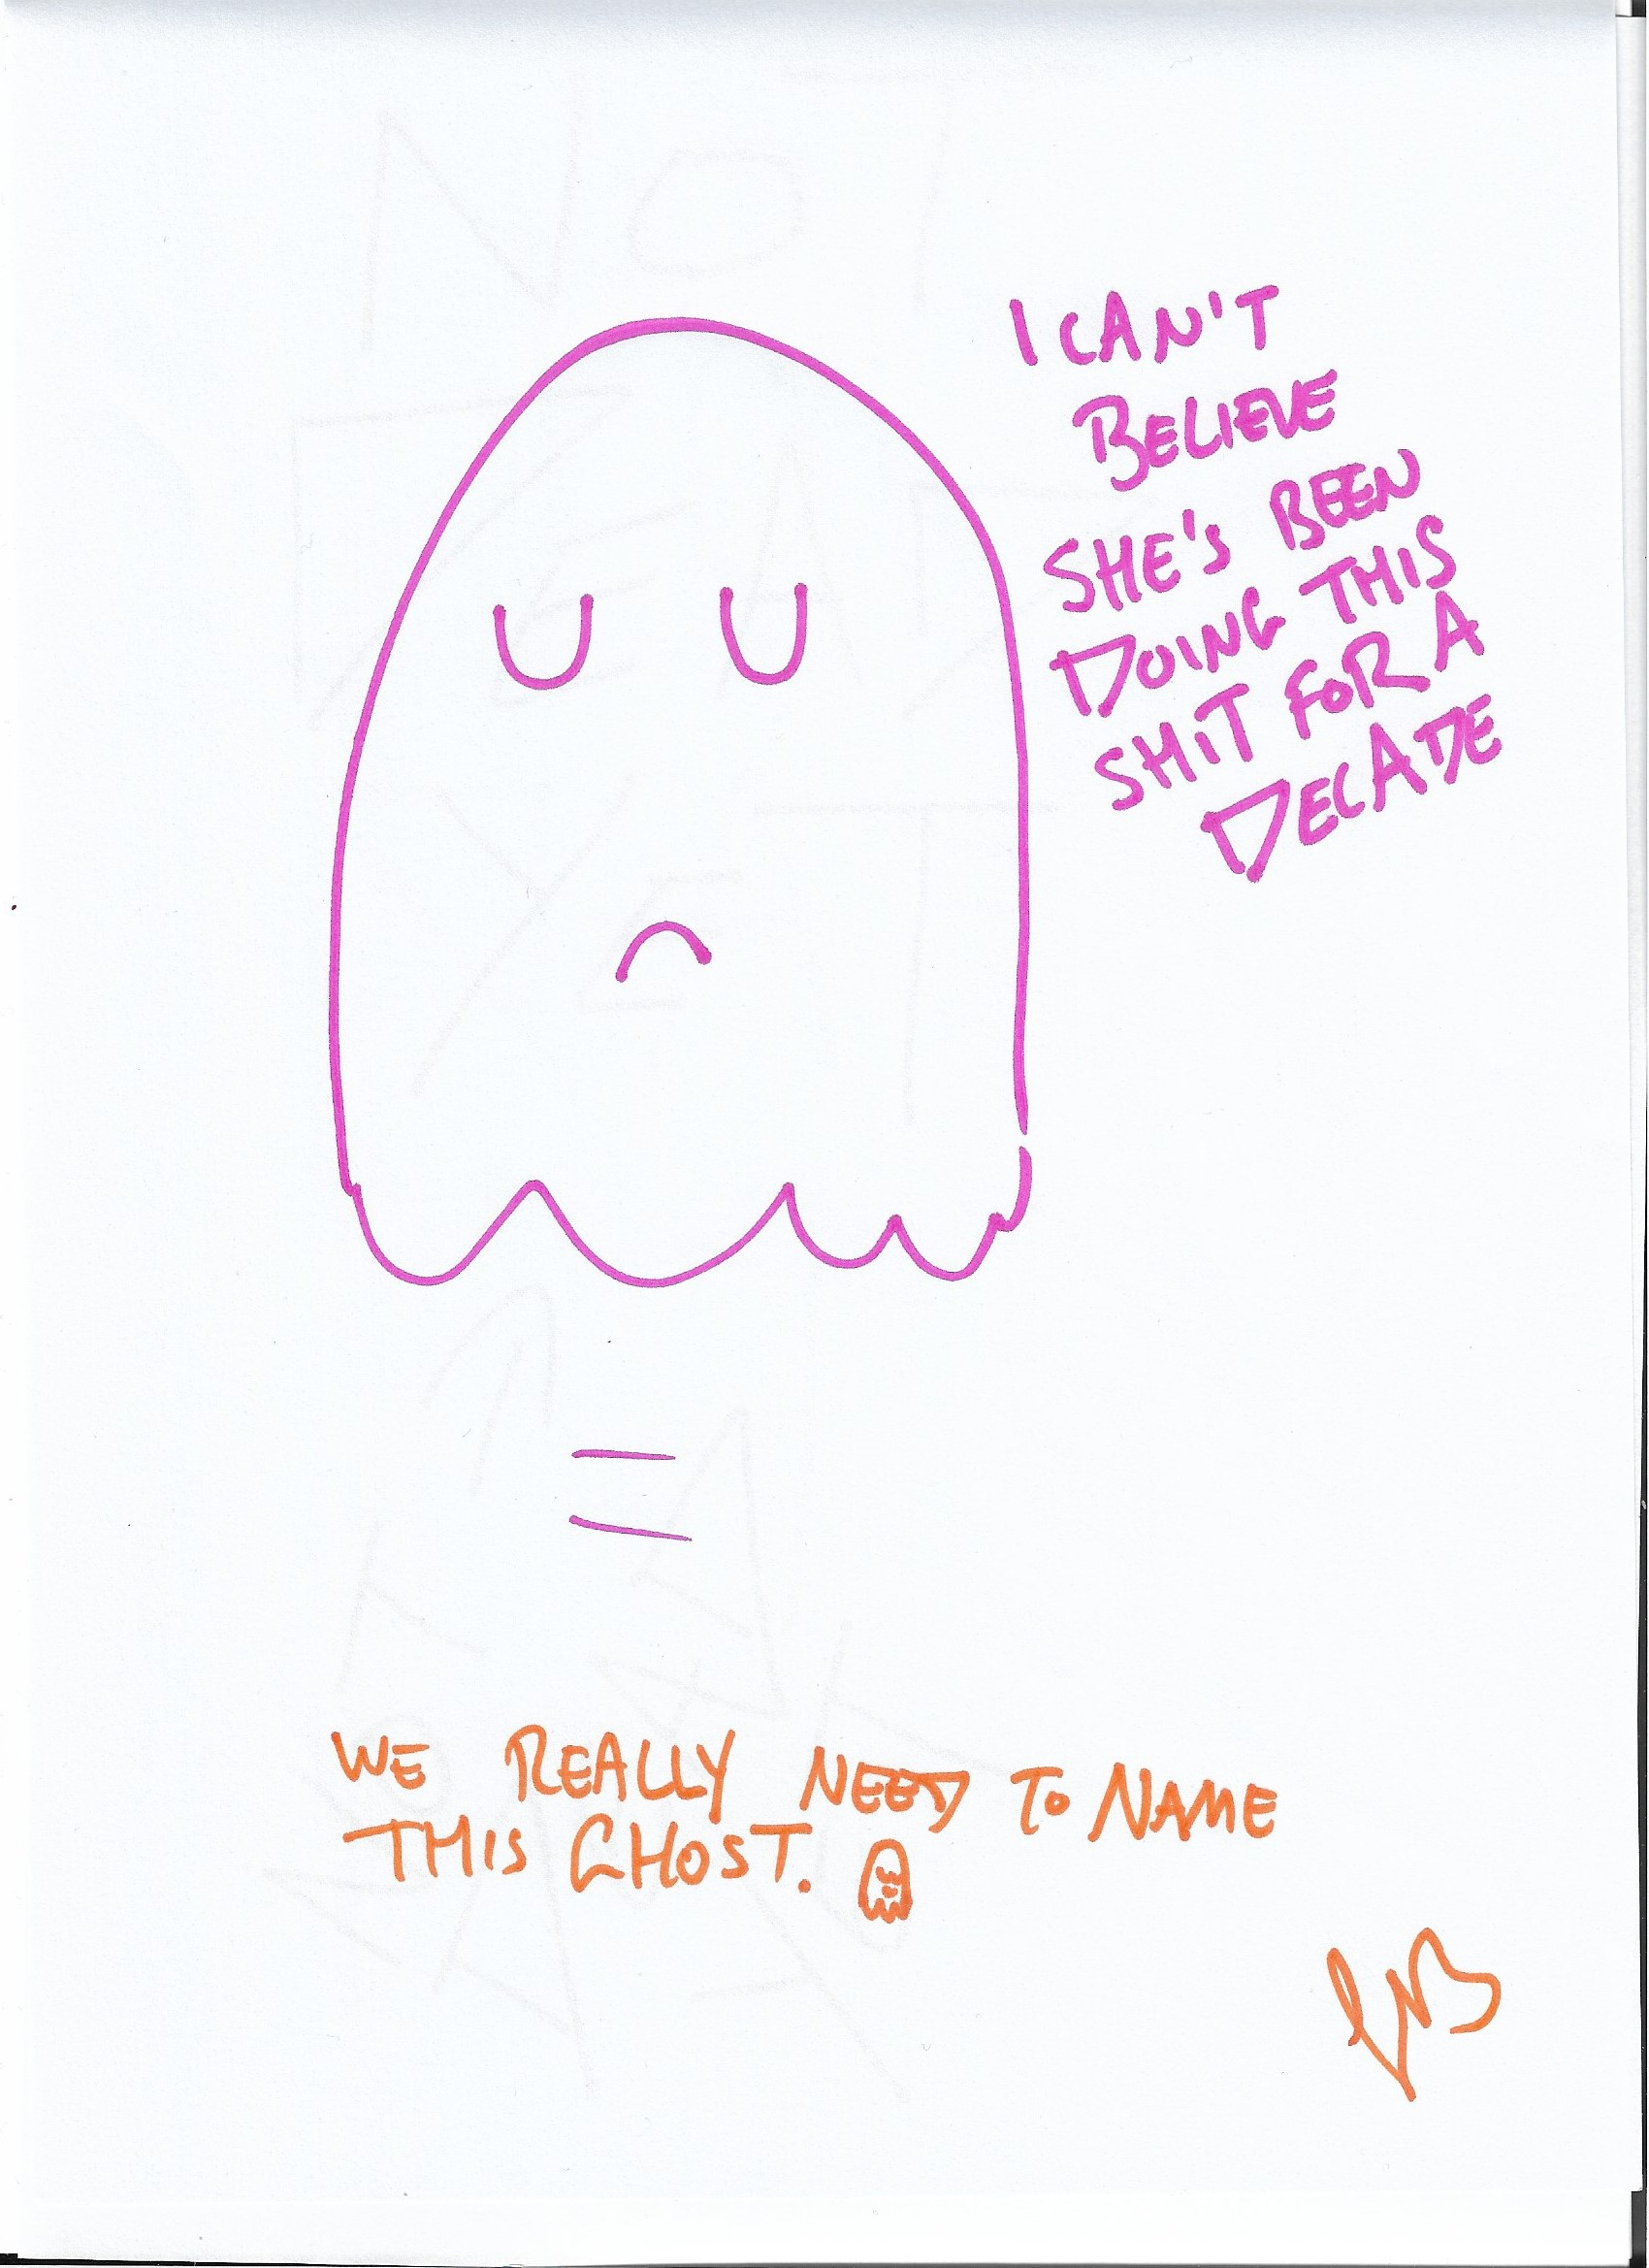 Sharpie sketch of a sad looking ghost with the words 'I can't believe she's been doing this for a decade'